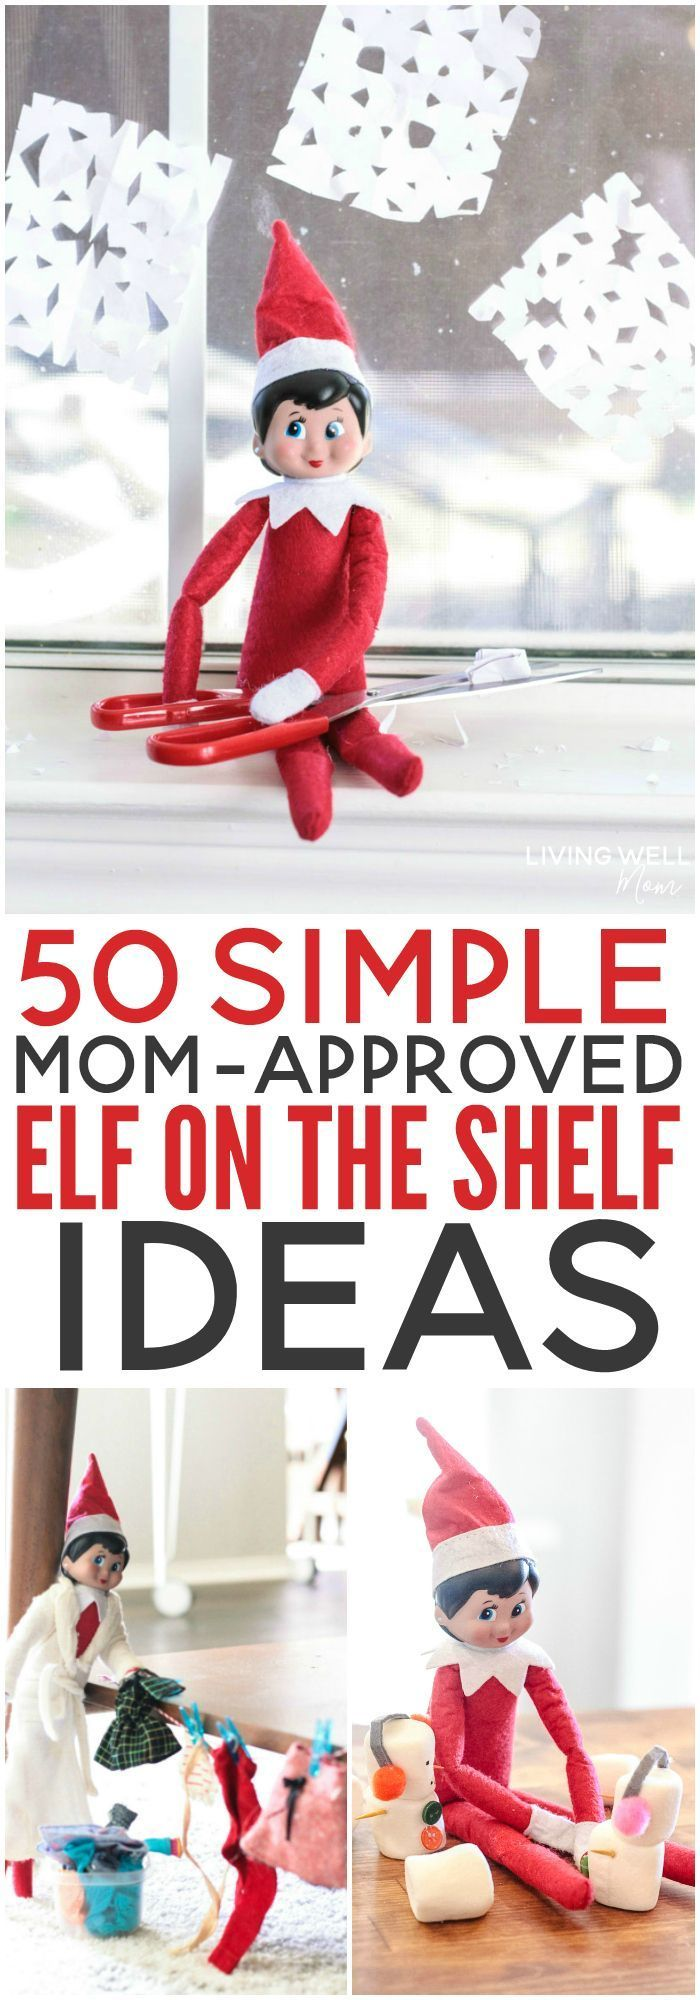 50 Simple Mom-Approved Elf on the Shelf Ideas #elfontheshelfideas